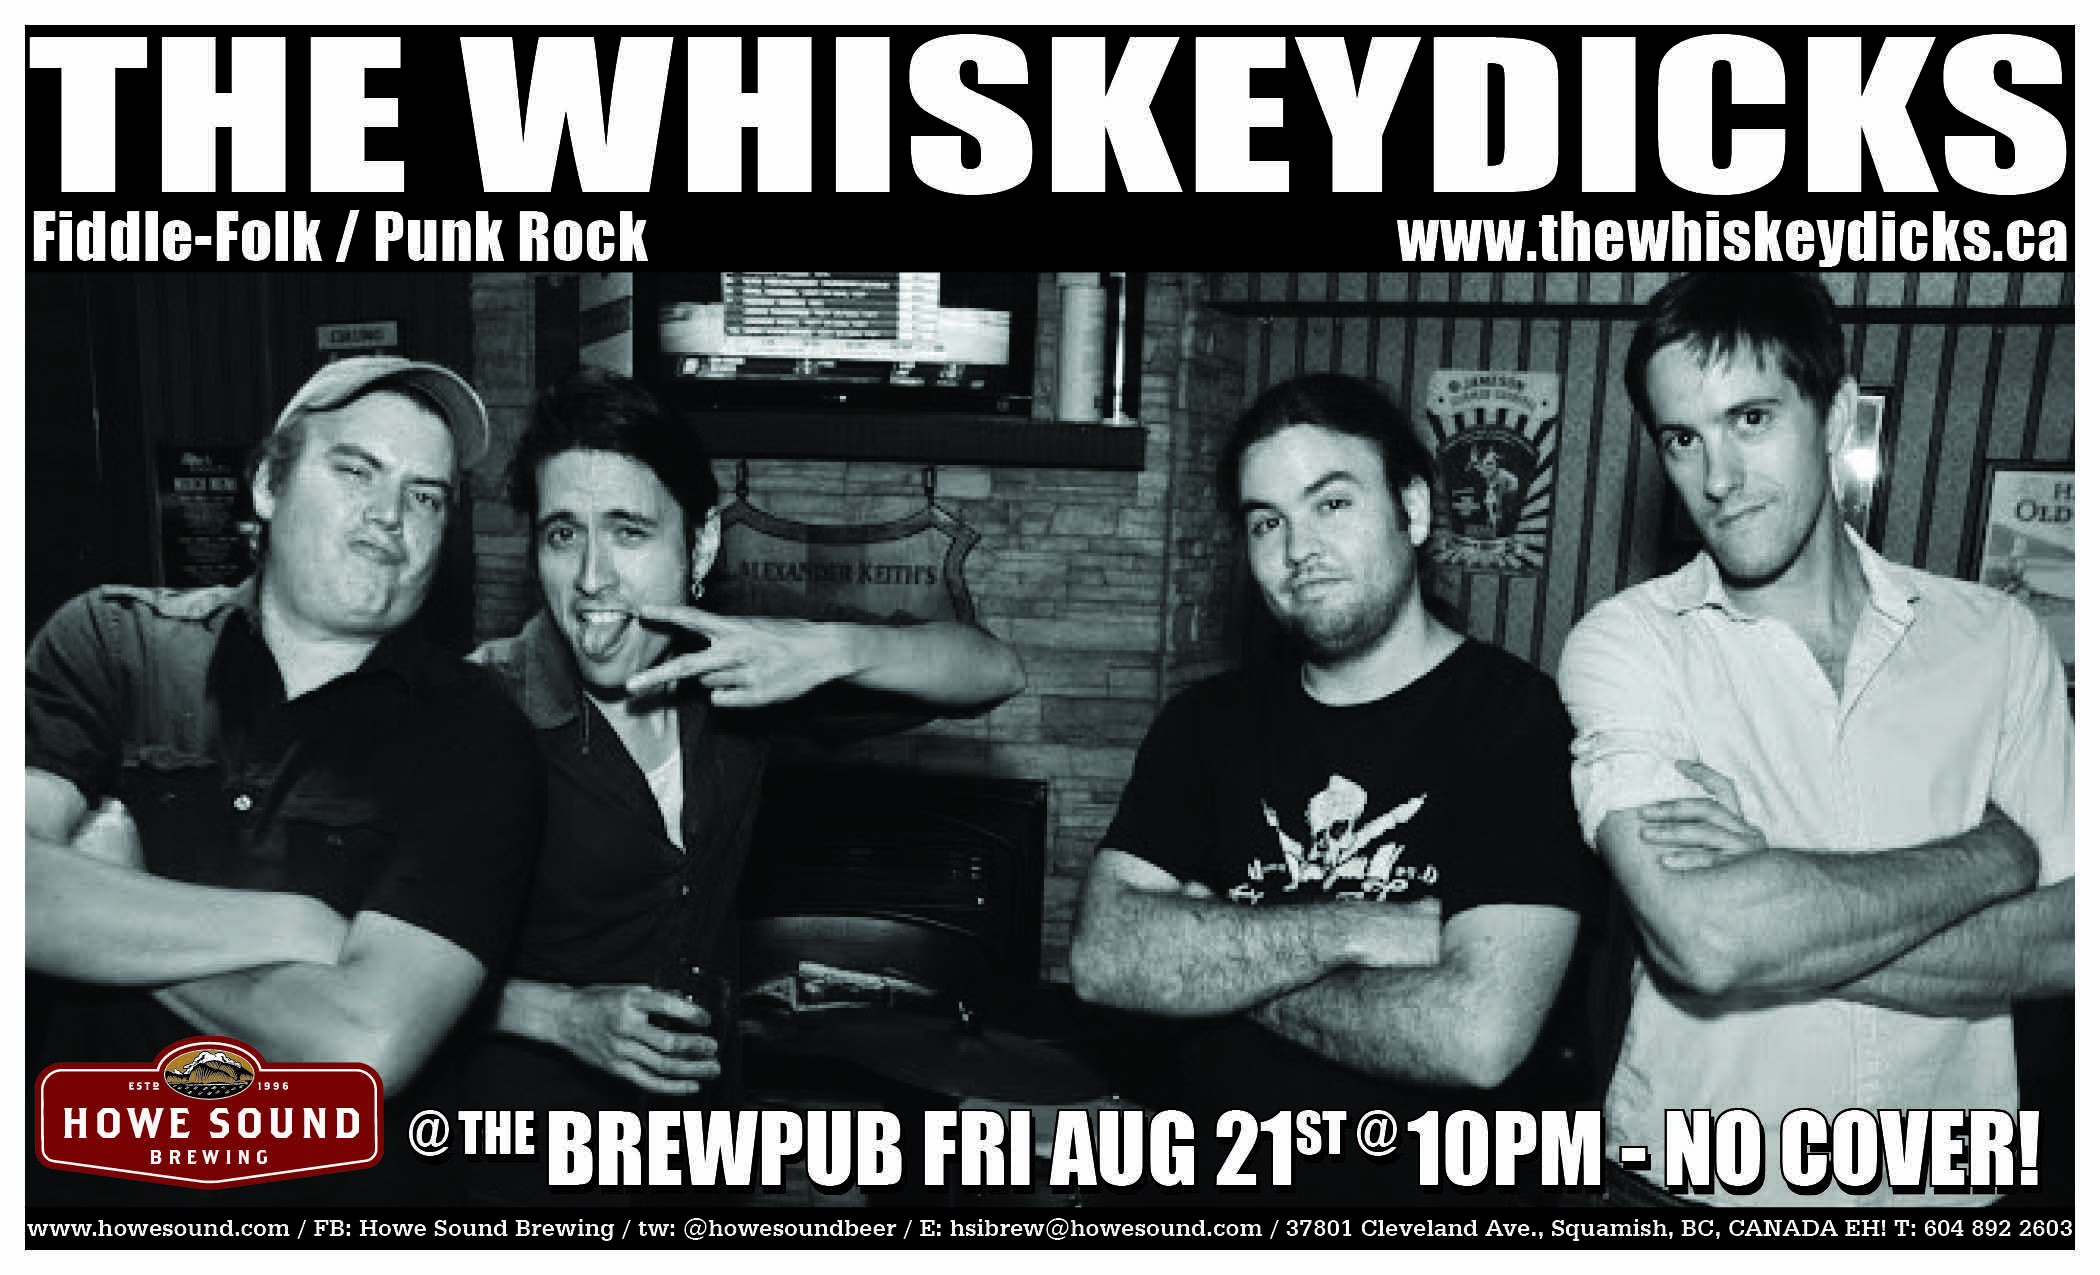 Friday, August 21 at 10 pm - The Whiskey Dicks at Howe Sound Brew Pub